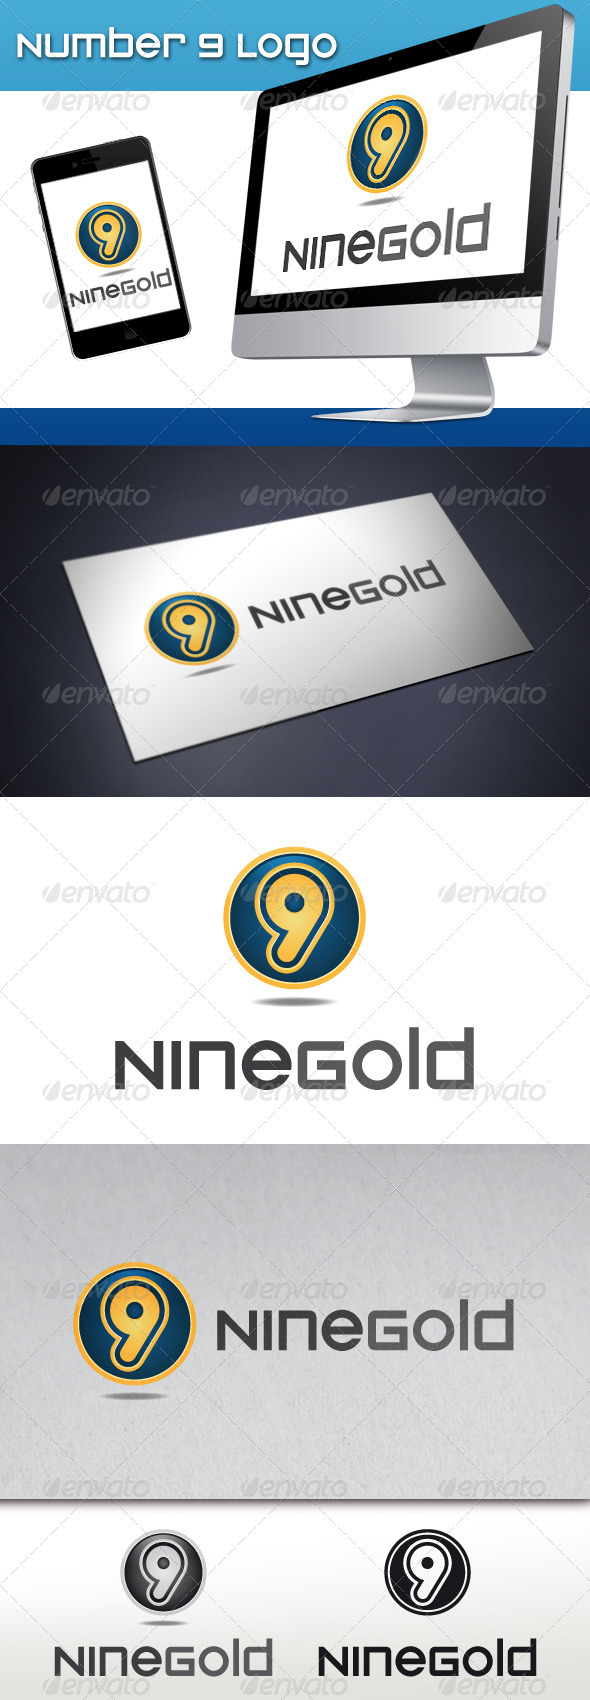 Number 9 Logo - Numbers Logo Templates